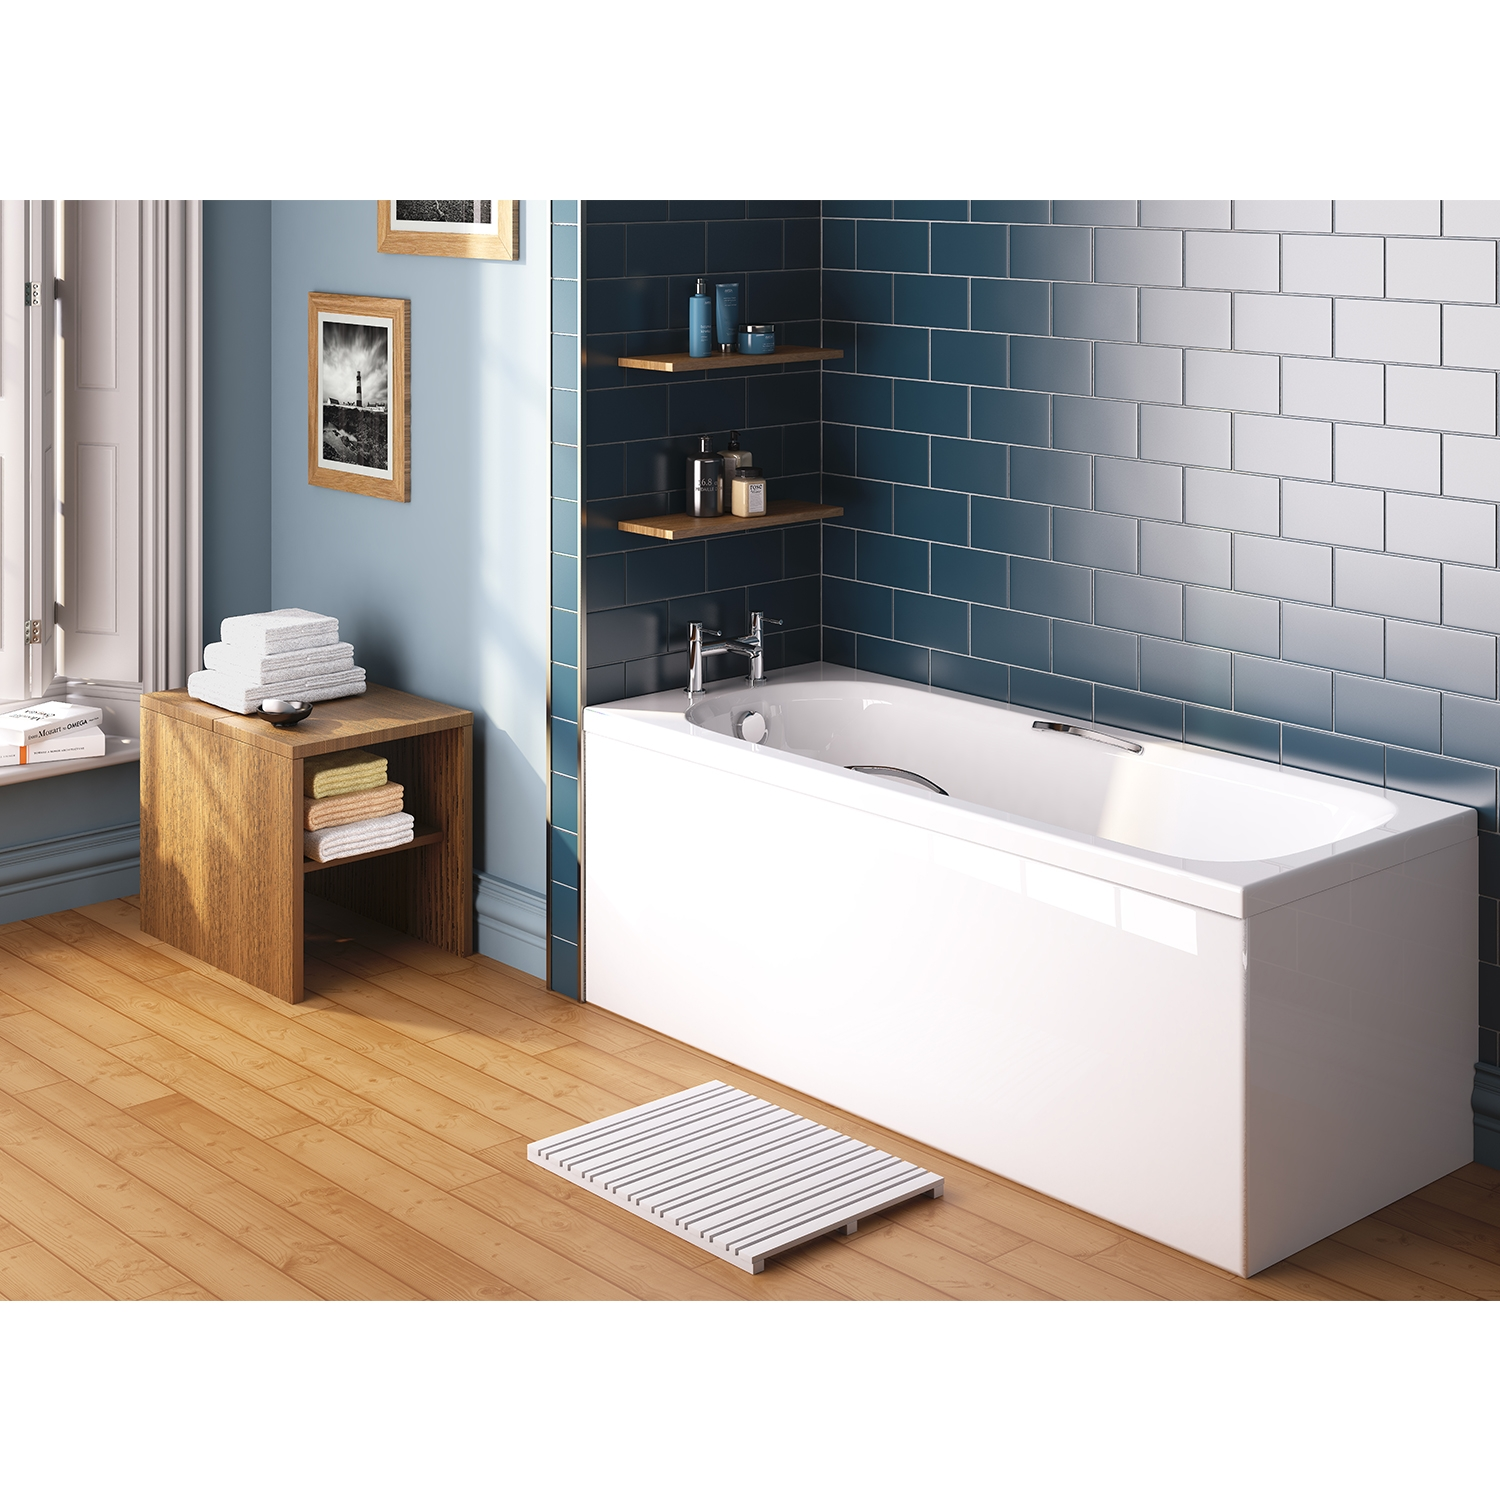 Premier Marshall Rectangular Bath with Grips 1600mm x 700mm 4mm - Acrylic-1